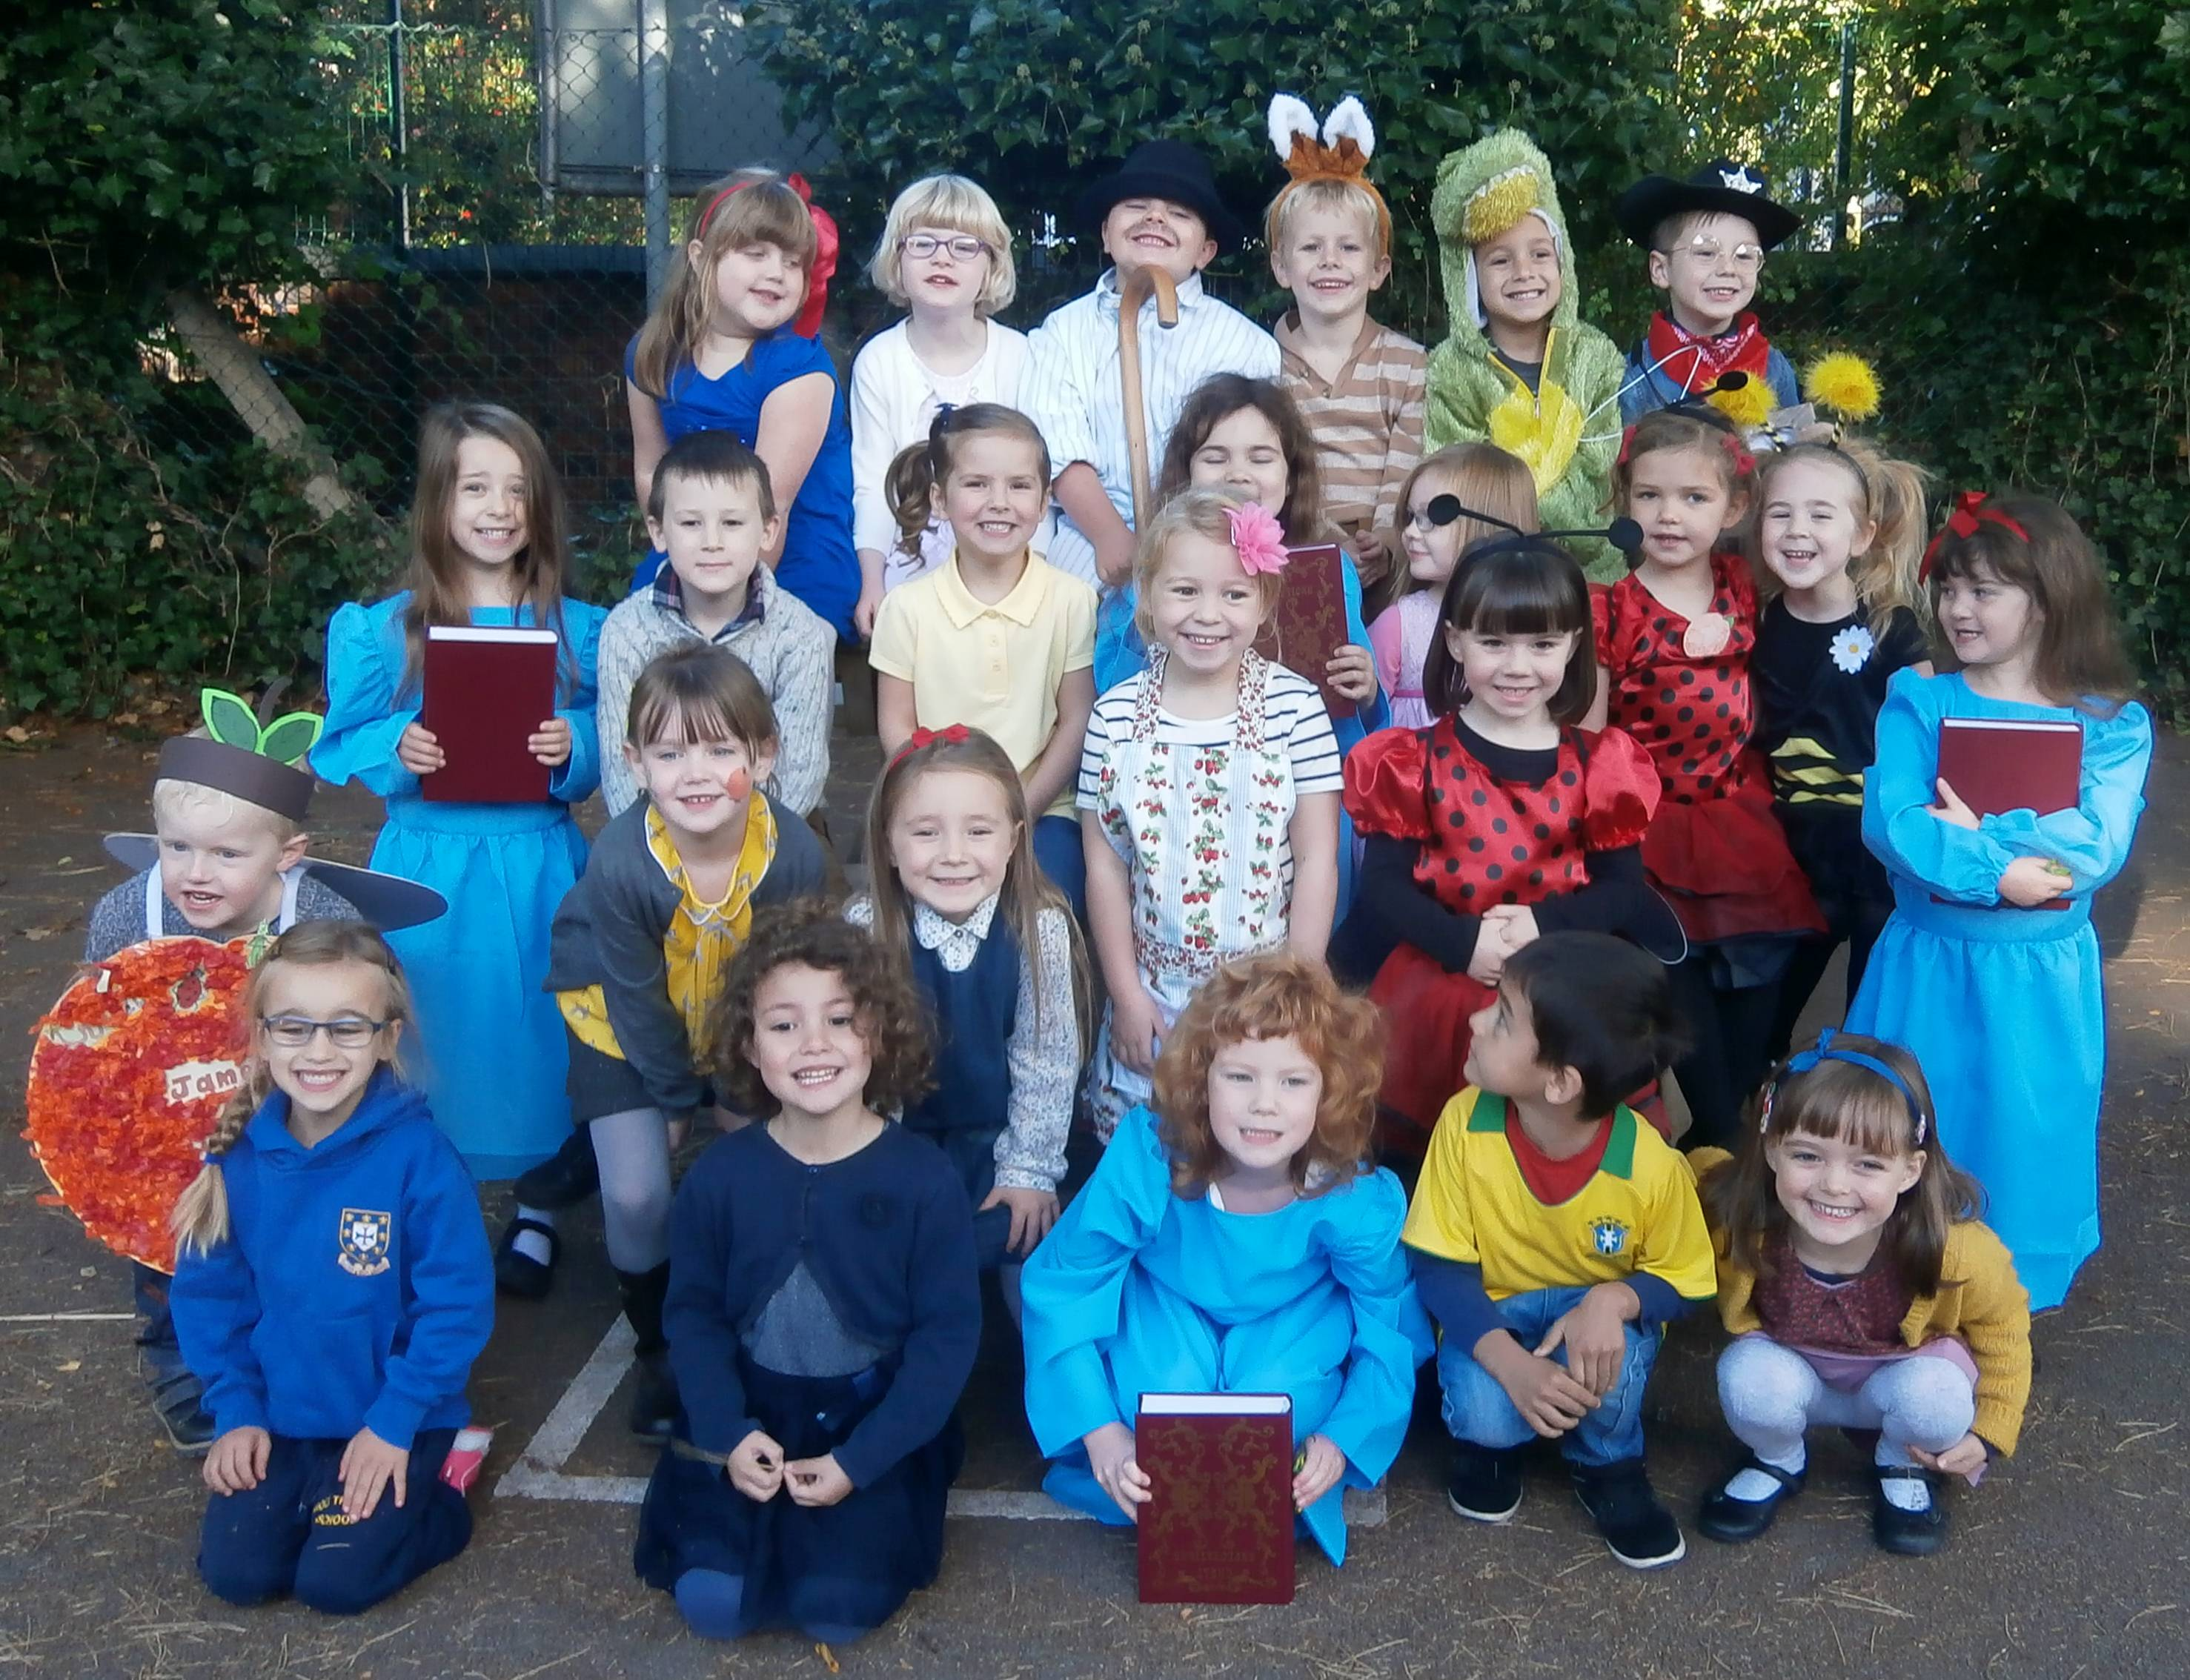 Kidderminster Students Enjoy Roald Dahl Dahlicious Dress Up Day